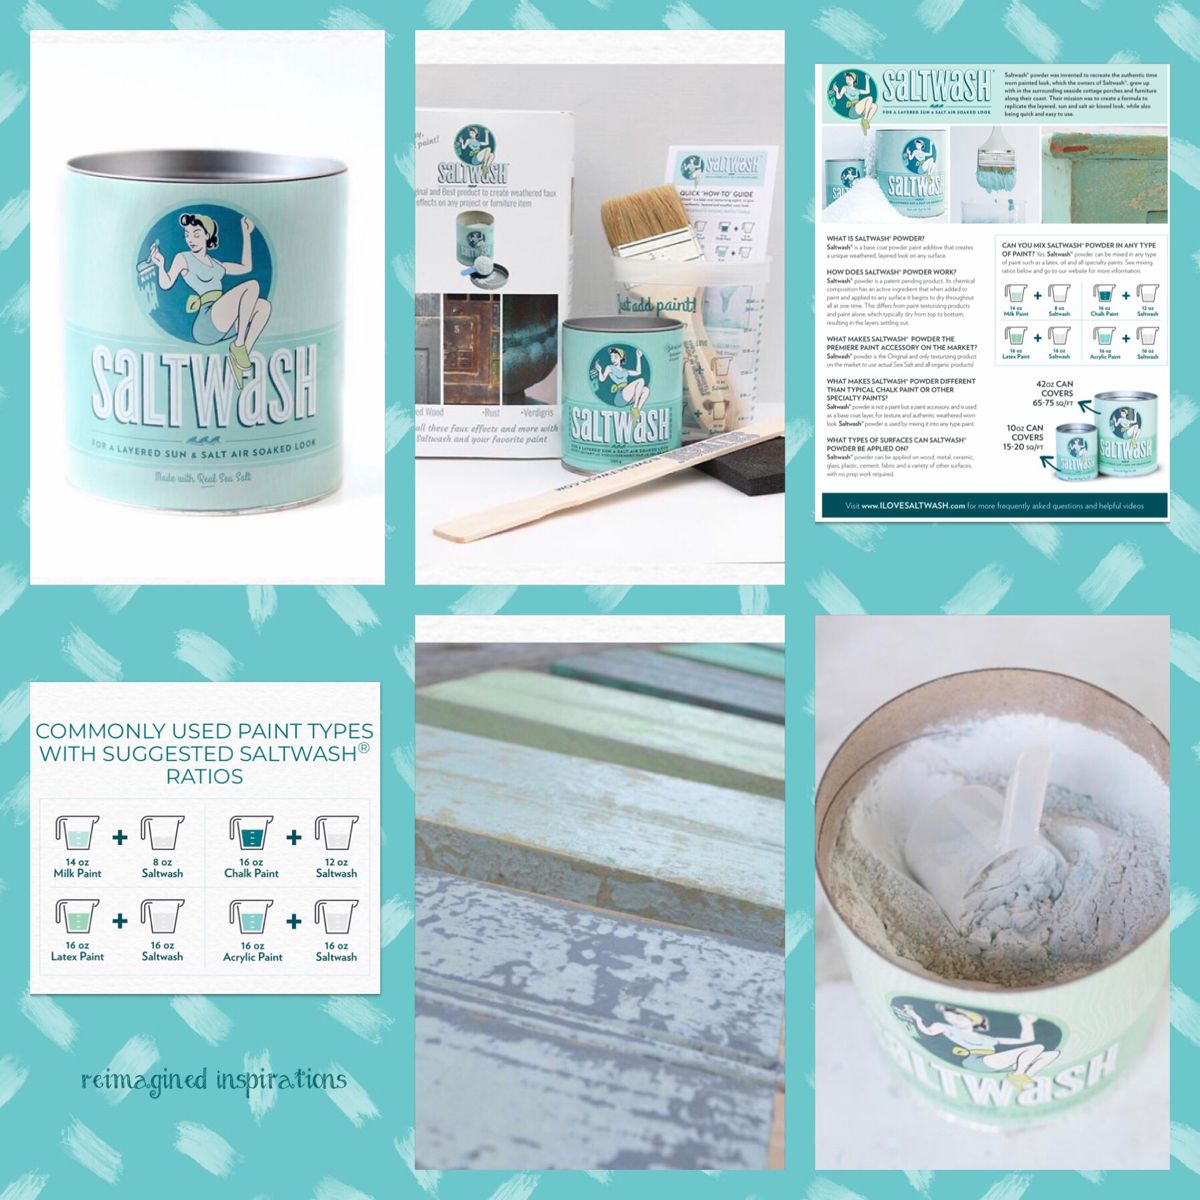 Saltwash is an amazing product! You can add it to any paint and get amazing texture on your projects. I use it on furniture, candle sticks, planters, pictures frames and mirrors....just to name a few things! You can get yours at Dusty Road Merchants at the Reimagined Inspirations booth 5 S Madison Street Oswego, IL #diy #paintedwinebottles #paintedfurnitureideas #chalkpainted #furniturepainting #texture #textureadditive #beachhousedecor #layeredpaint